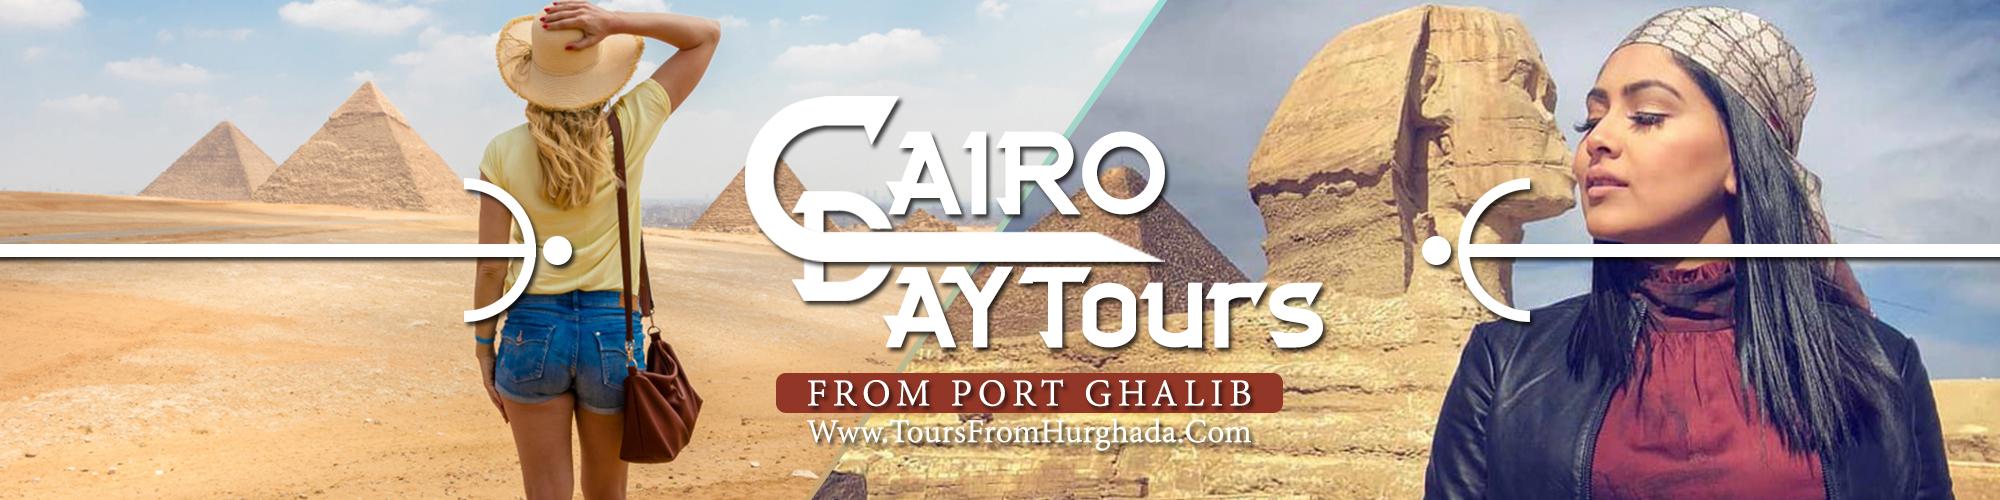 Trips to Cairo from Port Ghalib - Tours from Hurghada